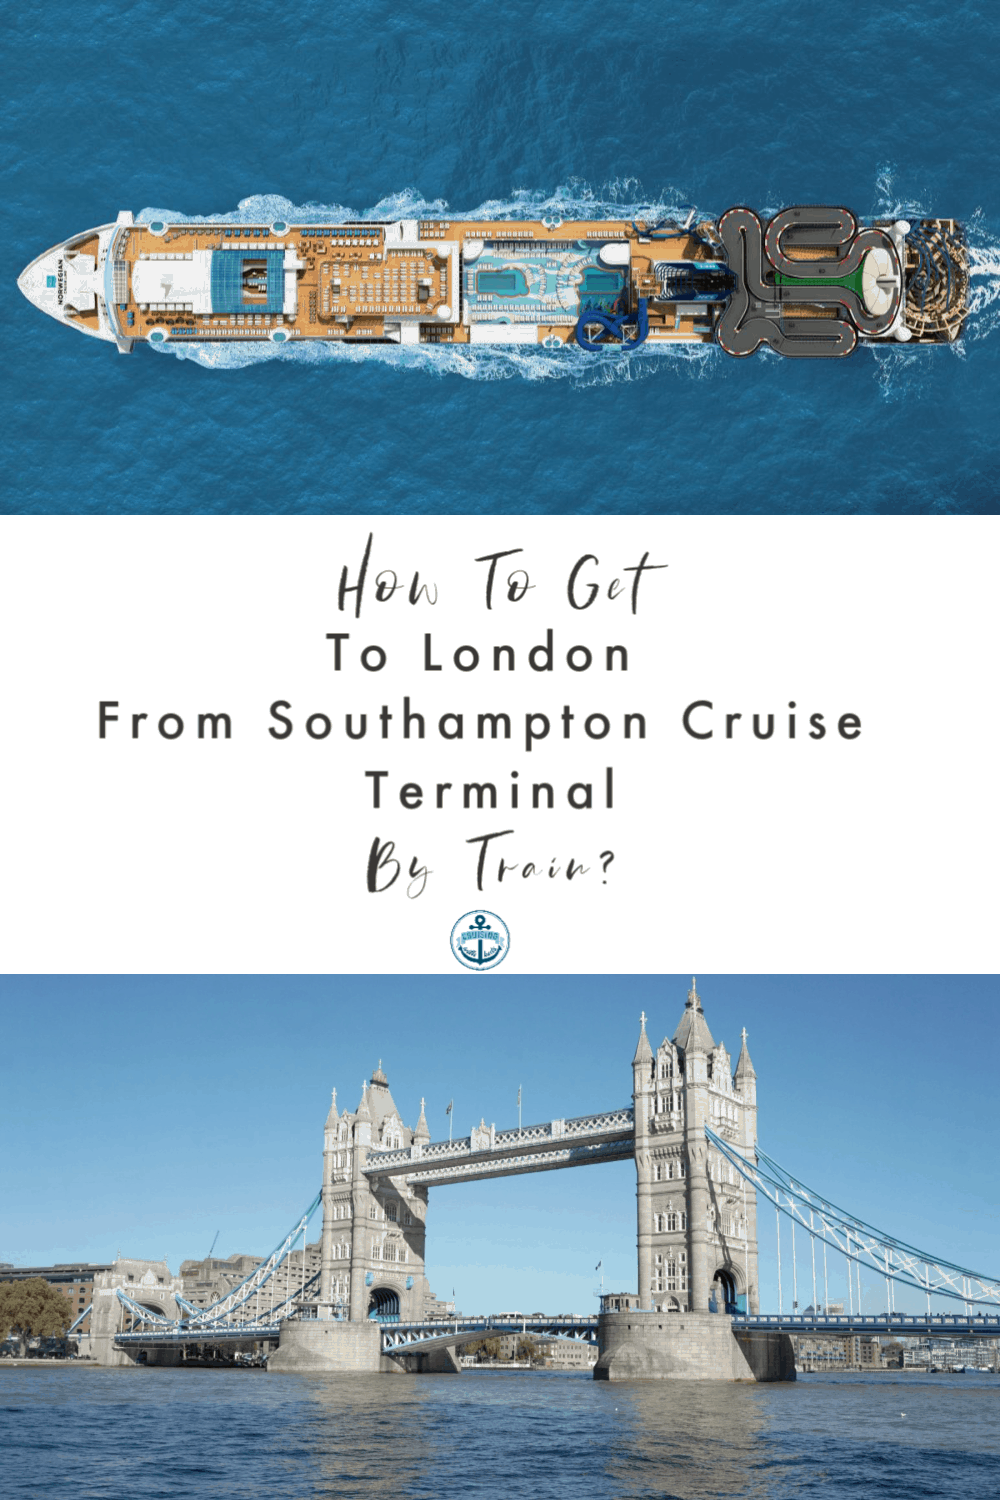 How To Get To London From Southampton Cruise Terminal By Train